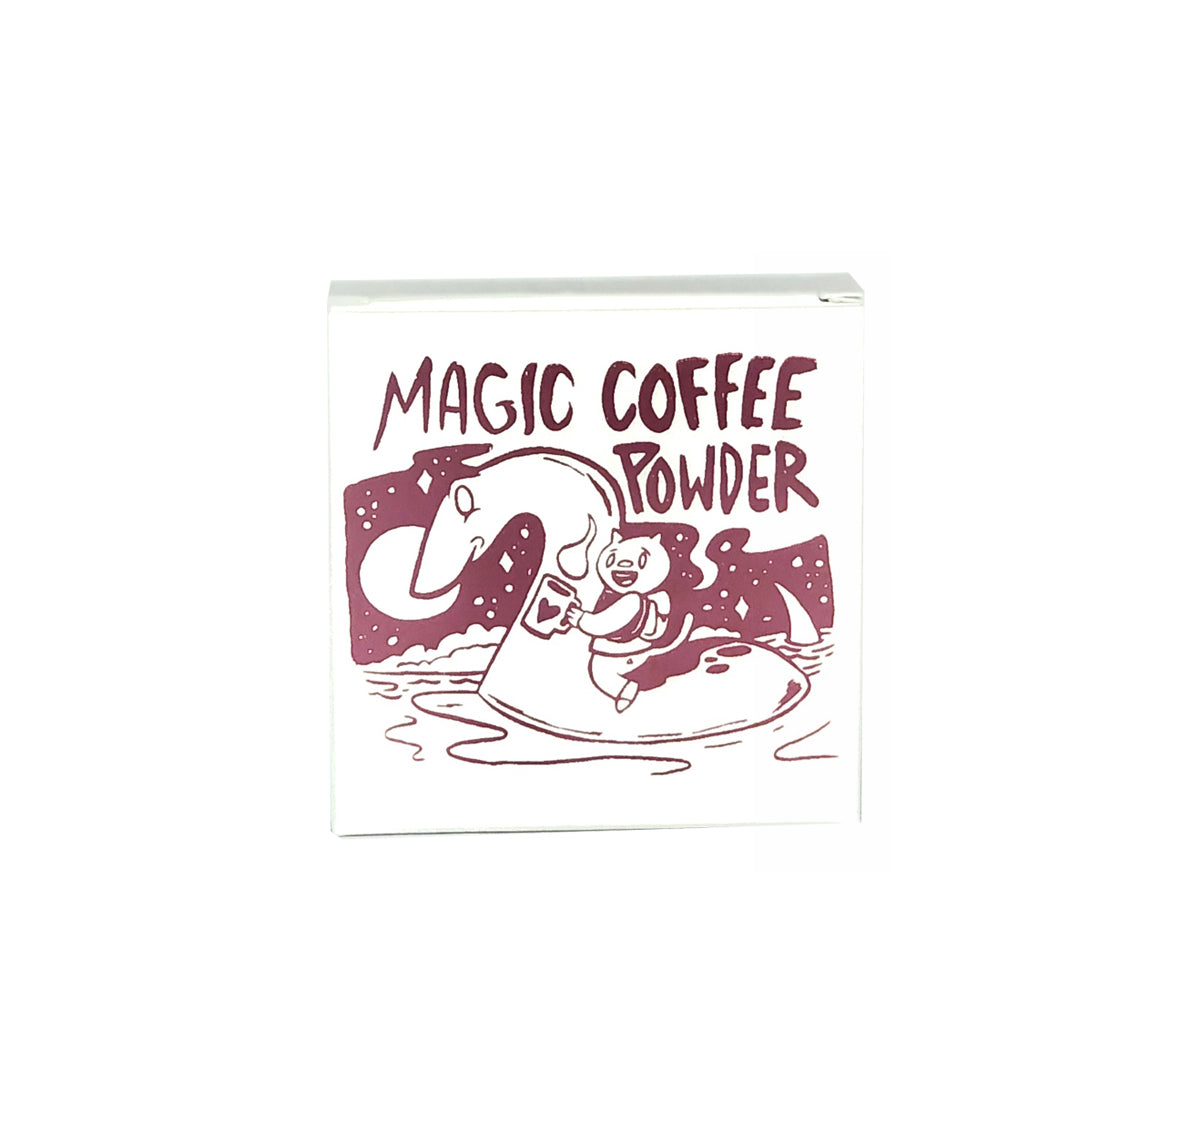 Instant Coffee Magic  - Variety Pack  - 6 pack - $16.00